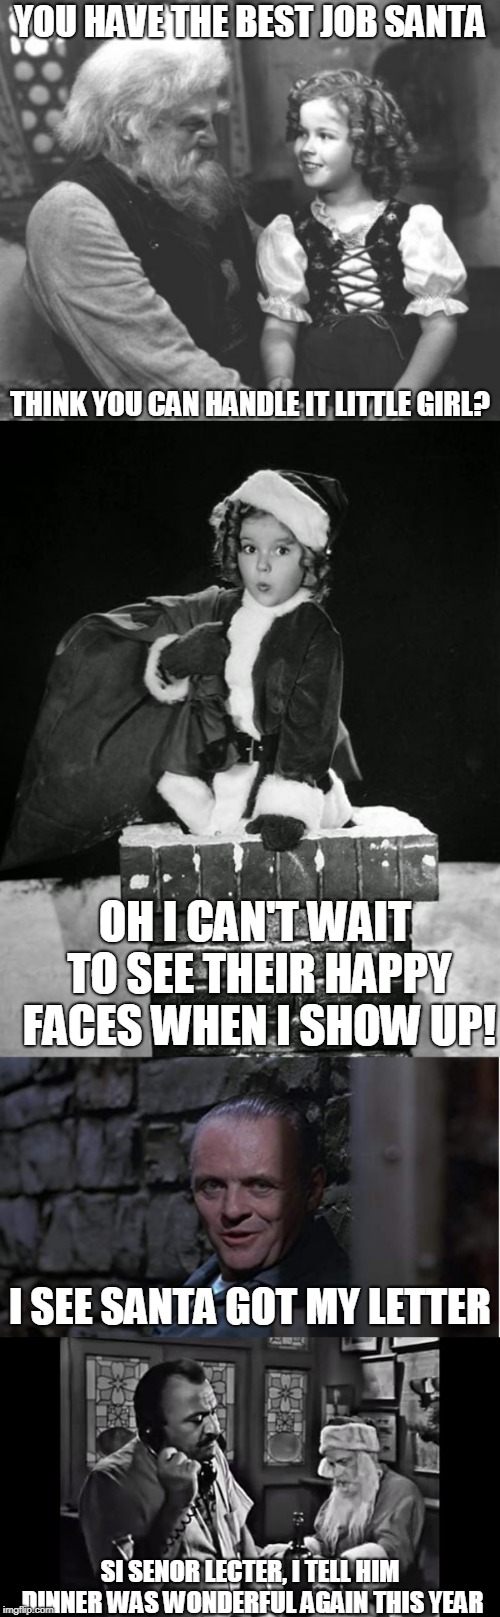 When Films Collide / Classic Film Mashup. A Foofy Holiday Event. | YOU HAVE THE BEST JOB SANTA SI SENOR LECTER, I TELL HIM DINNER WAS WONDERFUL AGAIN THIS YEAR THINK YOU CAN HANDLE IT LITTLE GIRL? OH I CAN'T | image tagged in christmas memes,silence of the lambs,dark humor | made w/ Imgflip meme maker